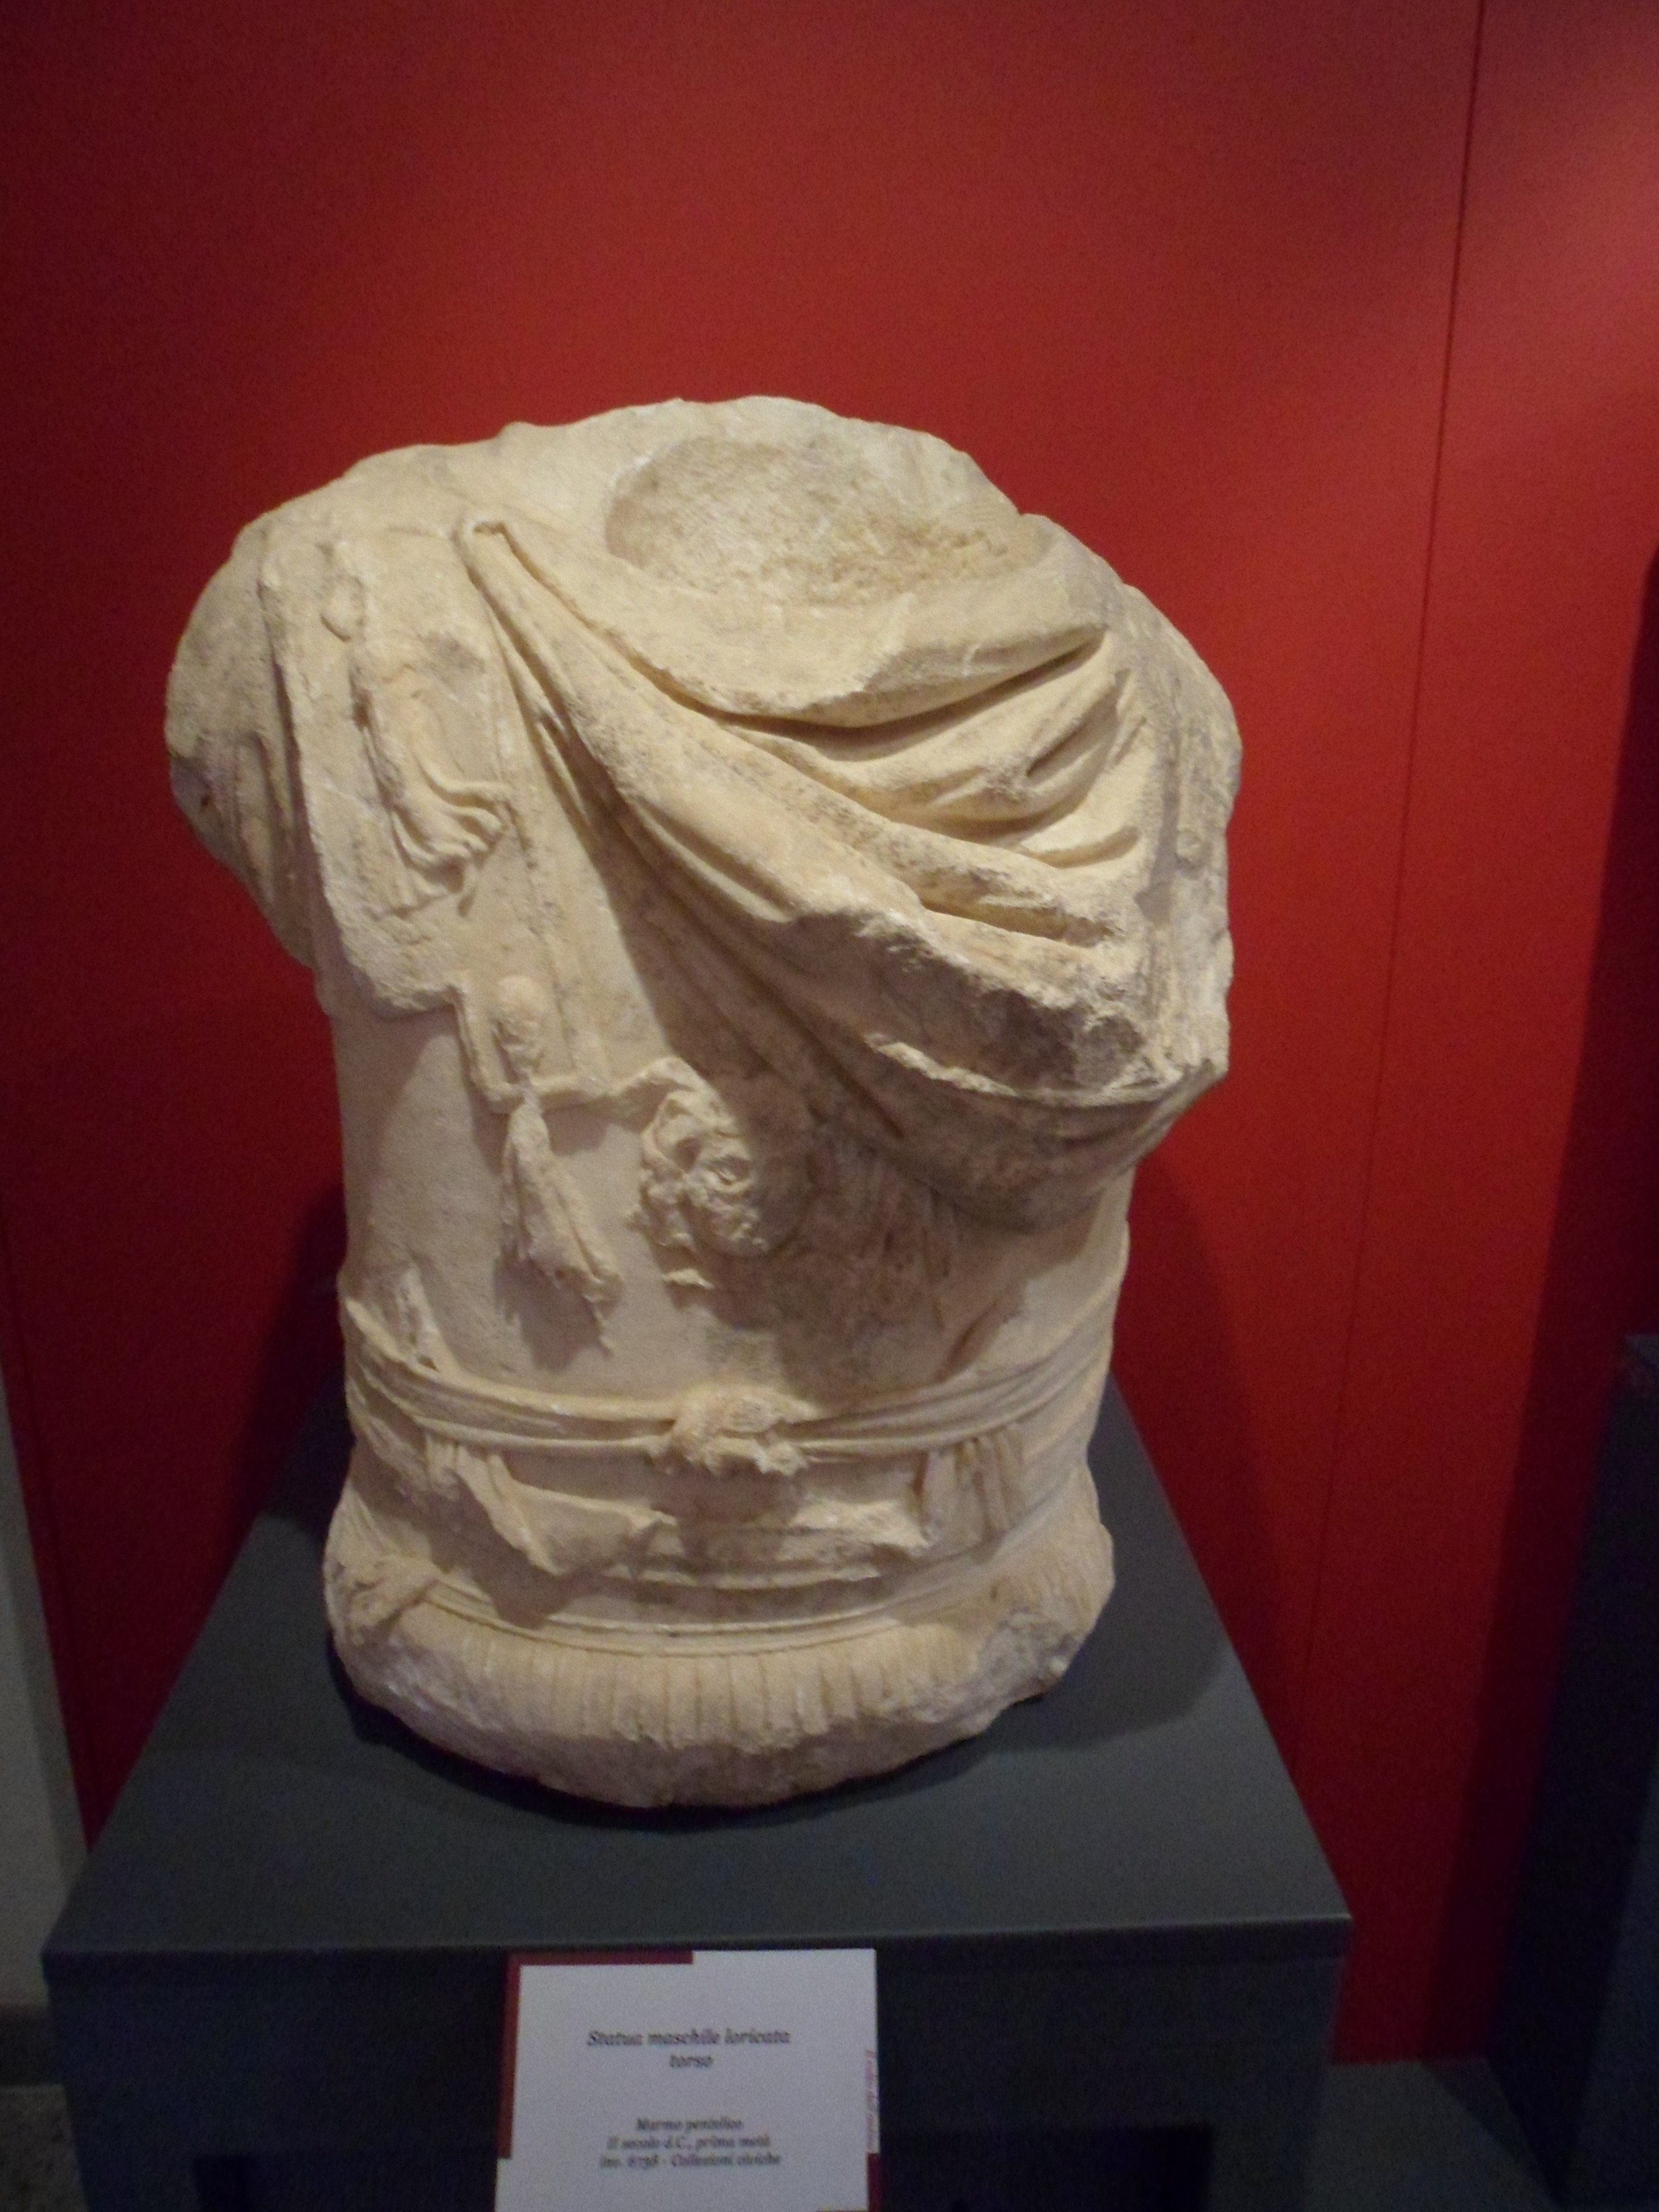 A bare marble statue of a torso in armour with shoulder flaps and a sash